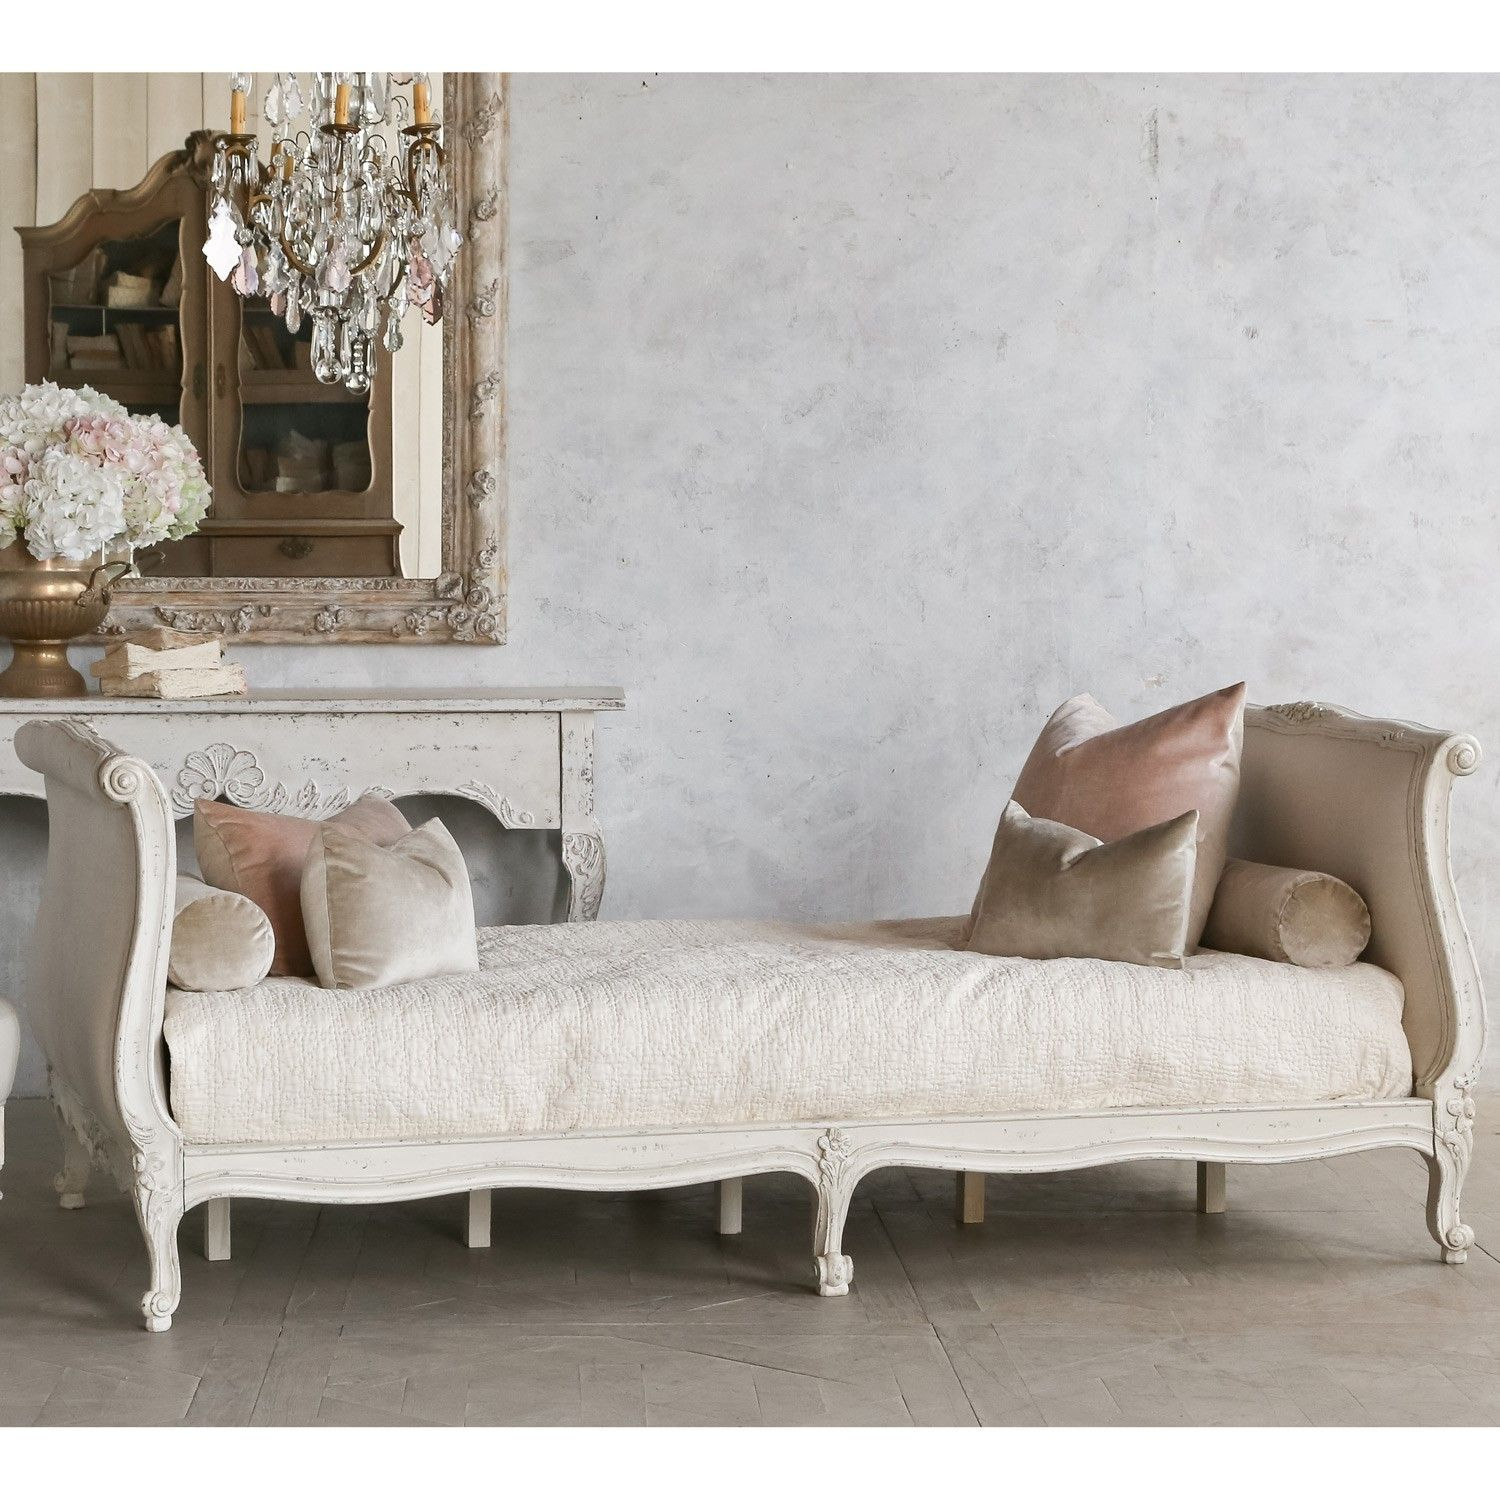 Scandinavian Folk Obsession Scandinavian Box Beds: Twin Clignancourt Daybed In Swedish Antique White